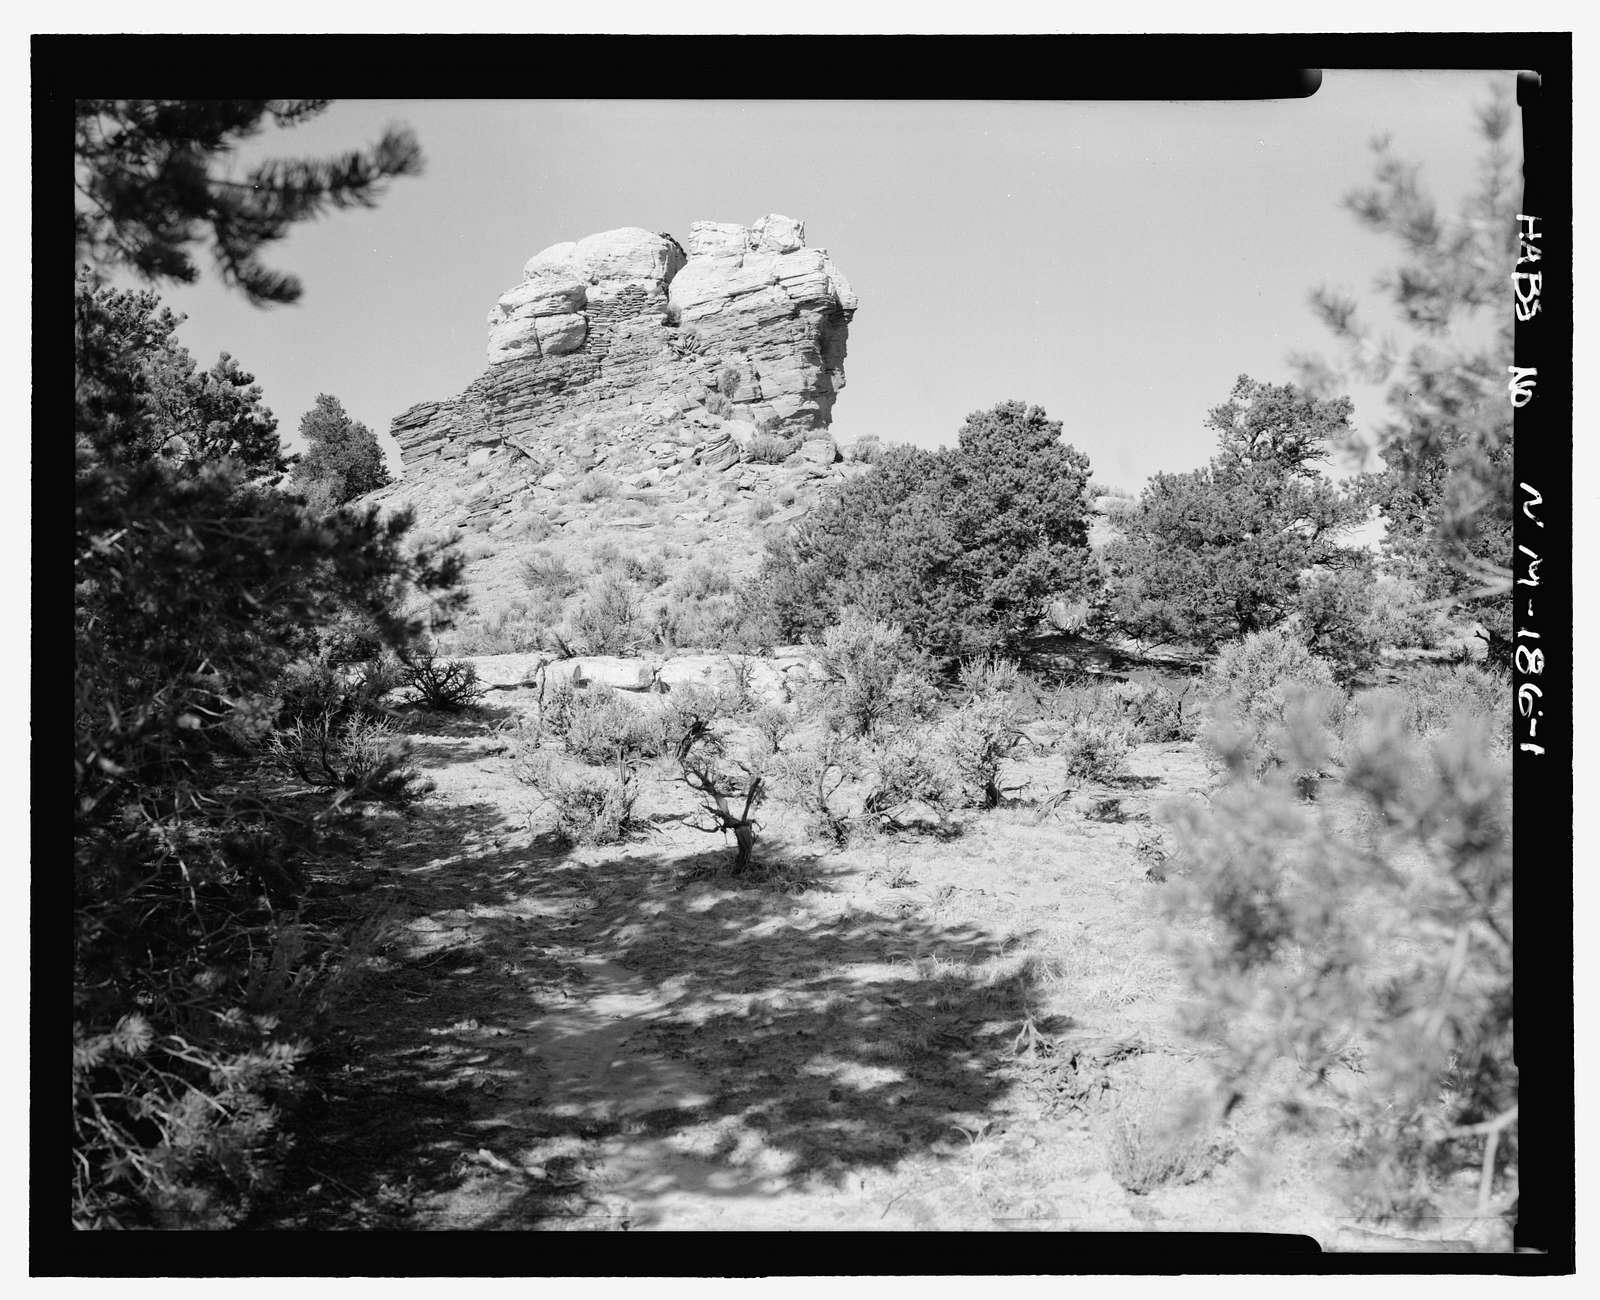 Pointed Butte Pueblito, Cibola Canyon, Dulce, Rio Arriba County, NM